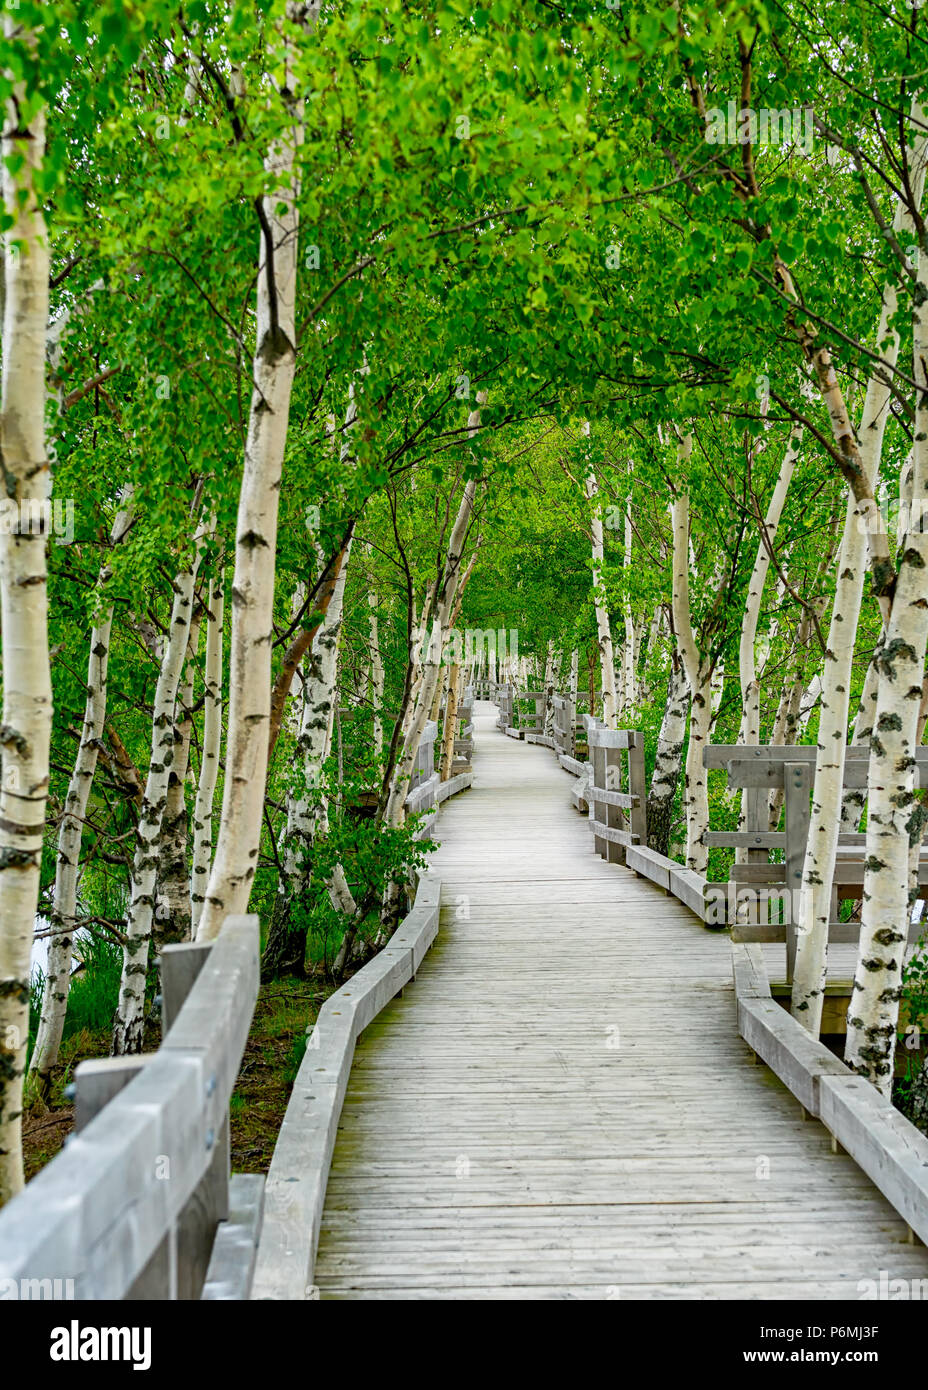 Boardwalk over the lake and marsh at the Sackville Waterfowl Park in Sackville, New Brunswick, Canada. - Stock Image